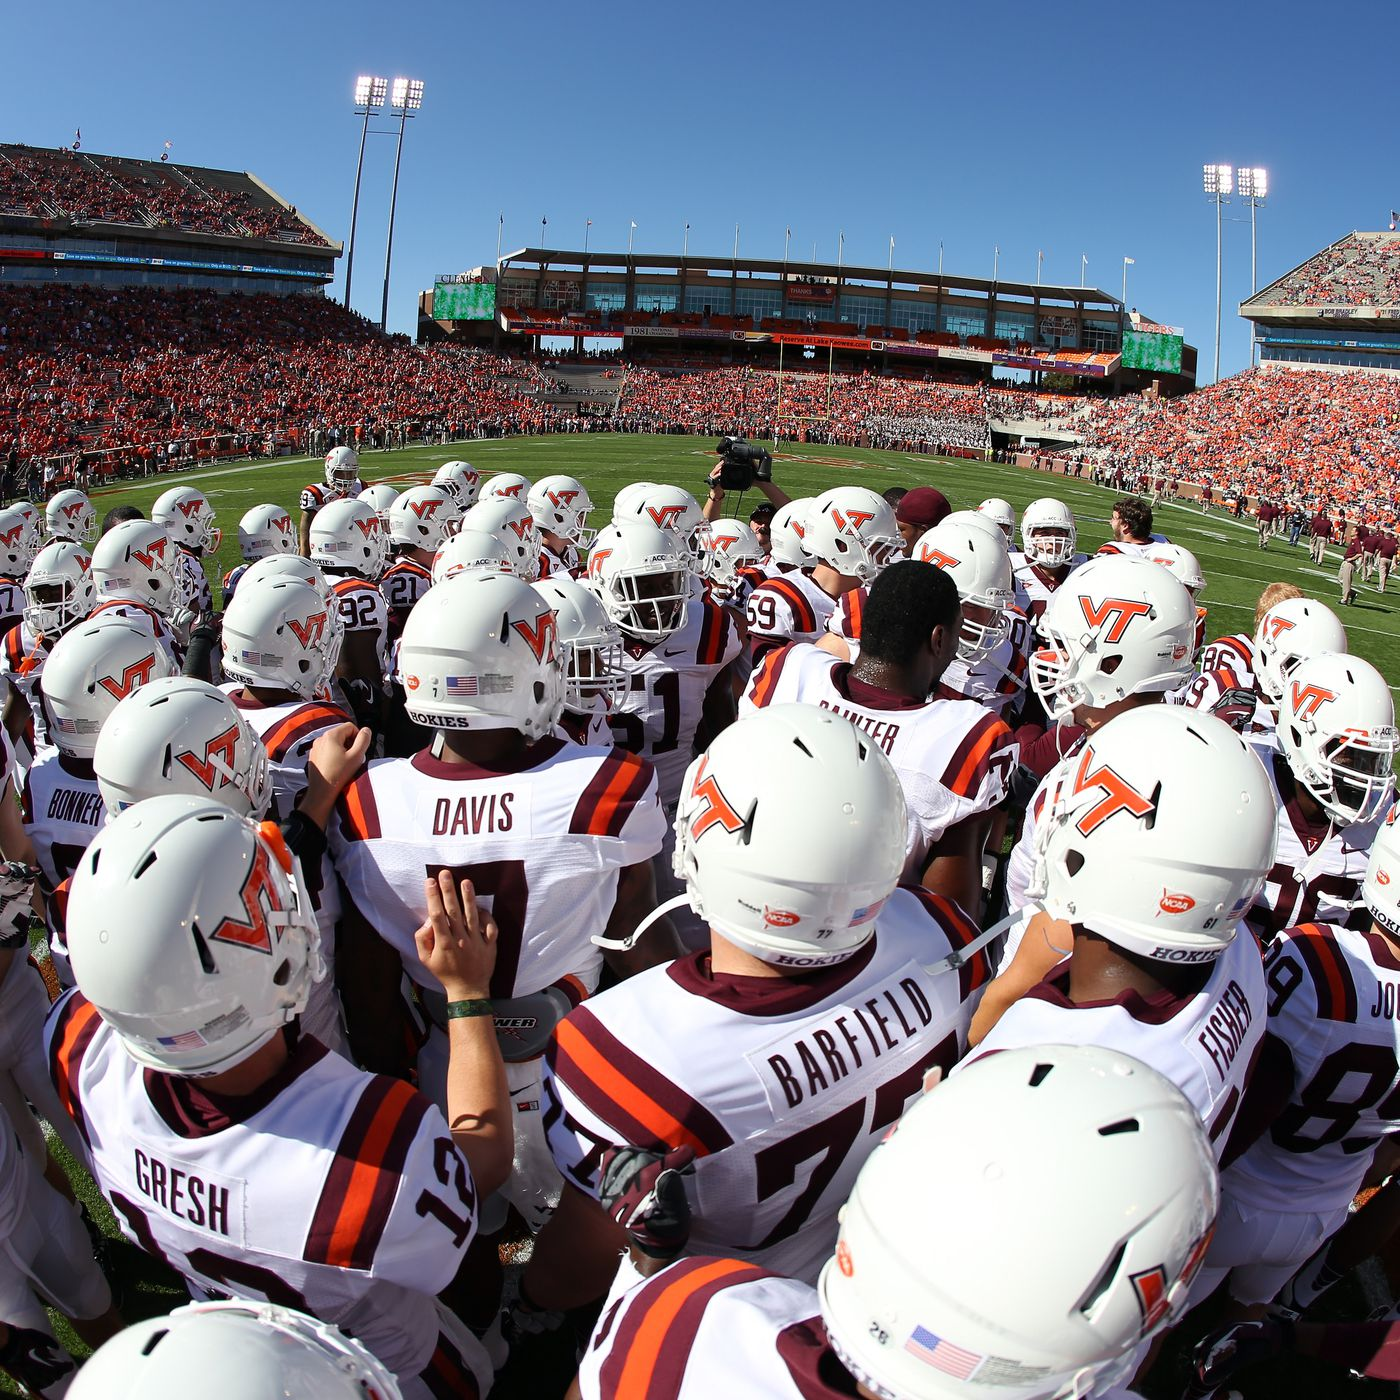 Virginia Tech Vs Miami 2012 Tv Schedule Game Time Spread And More Sb Nation Dc